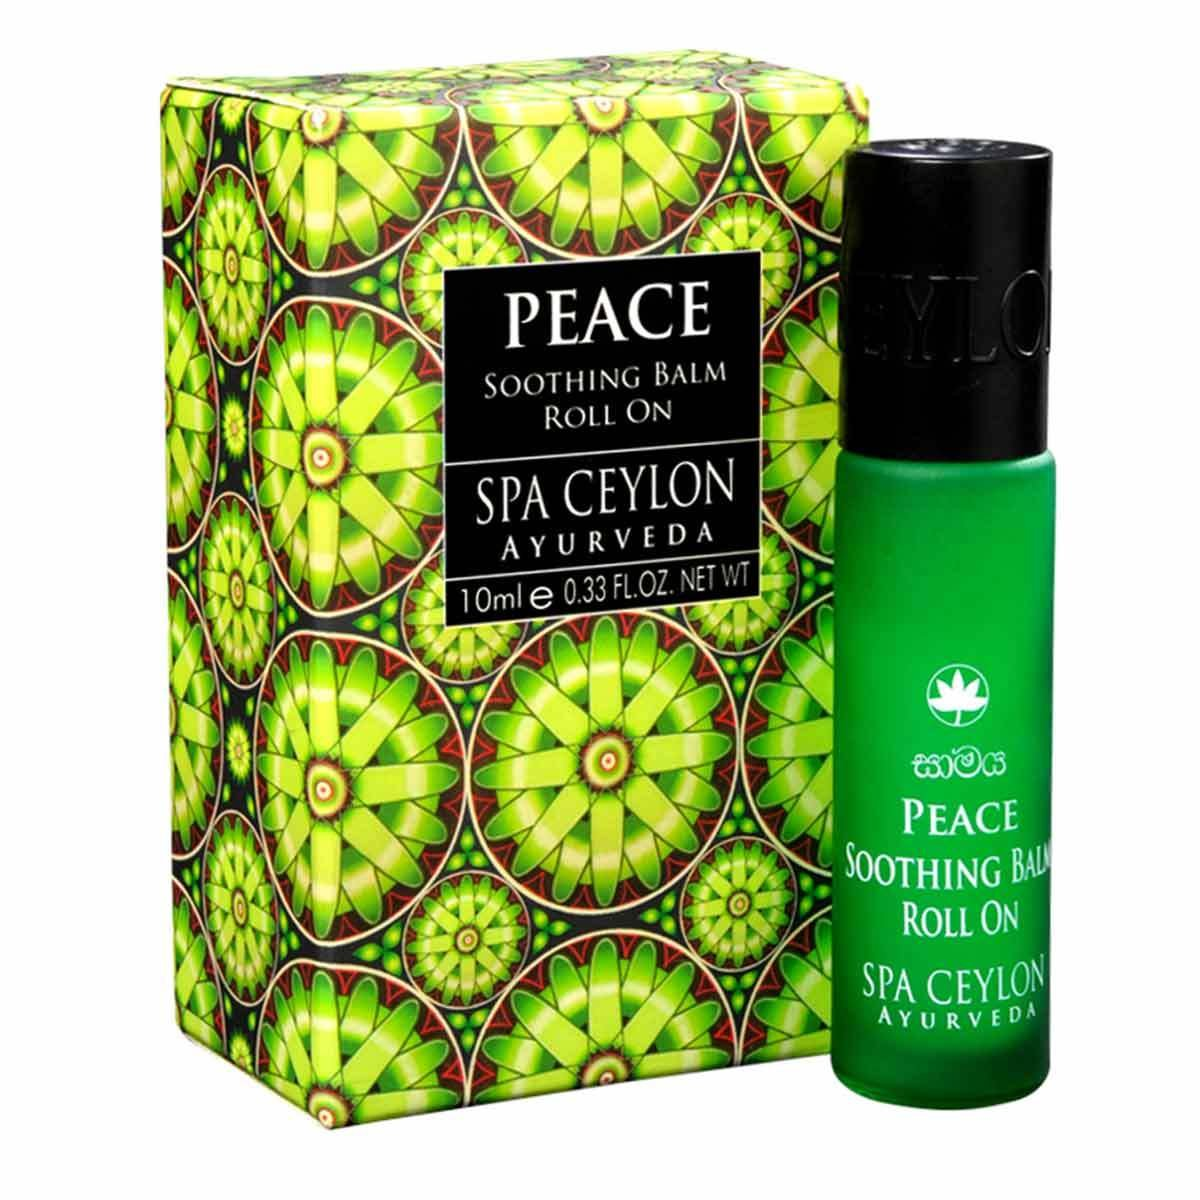 Spa Ceylon Luxury Ayurveda Peace Soothing Balm Liquid with Pure Natural Essential Oils in Convenient Travel Friendly Roll On Applicator, 0.33 Fluid Ounces